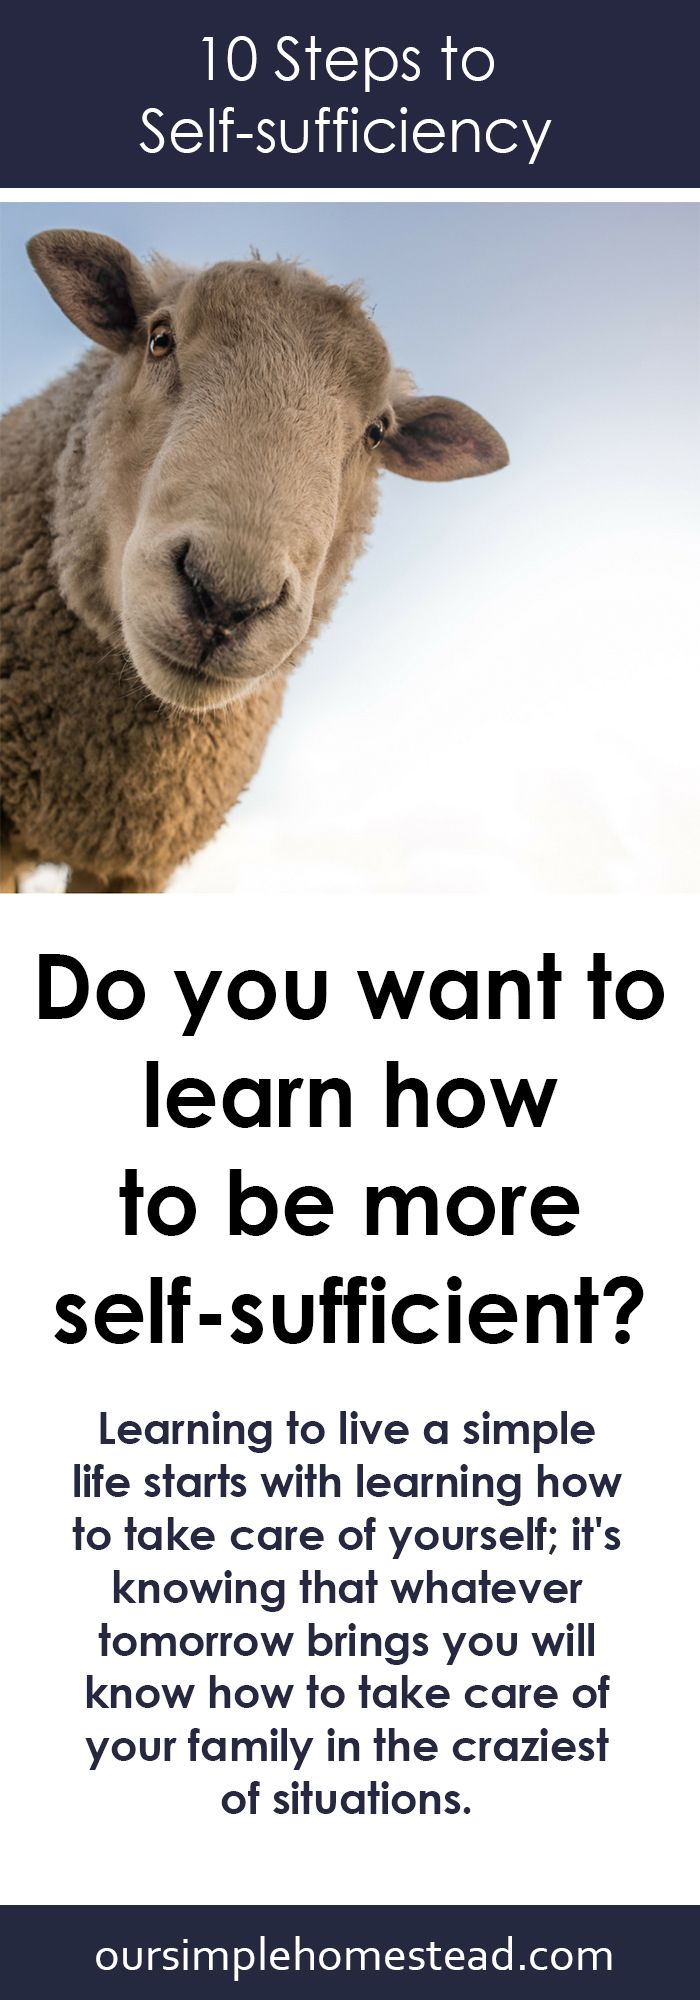 10 Steps for Living a Self-sufficient Lifestyle - Learning to live a simple life starts with learning how to take care of yourself; it's knowing that whatever tomorrow brings you will know how to take care of your family in the craziest of situations.